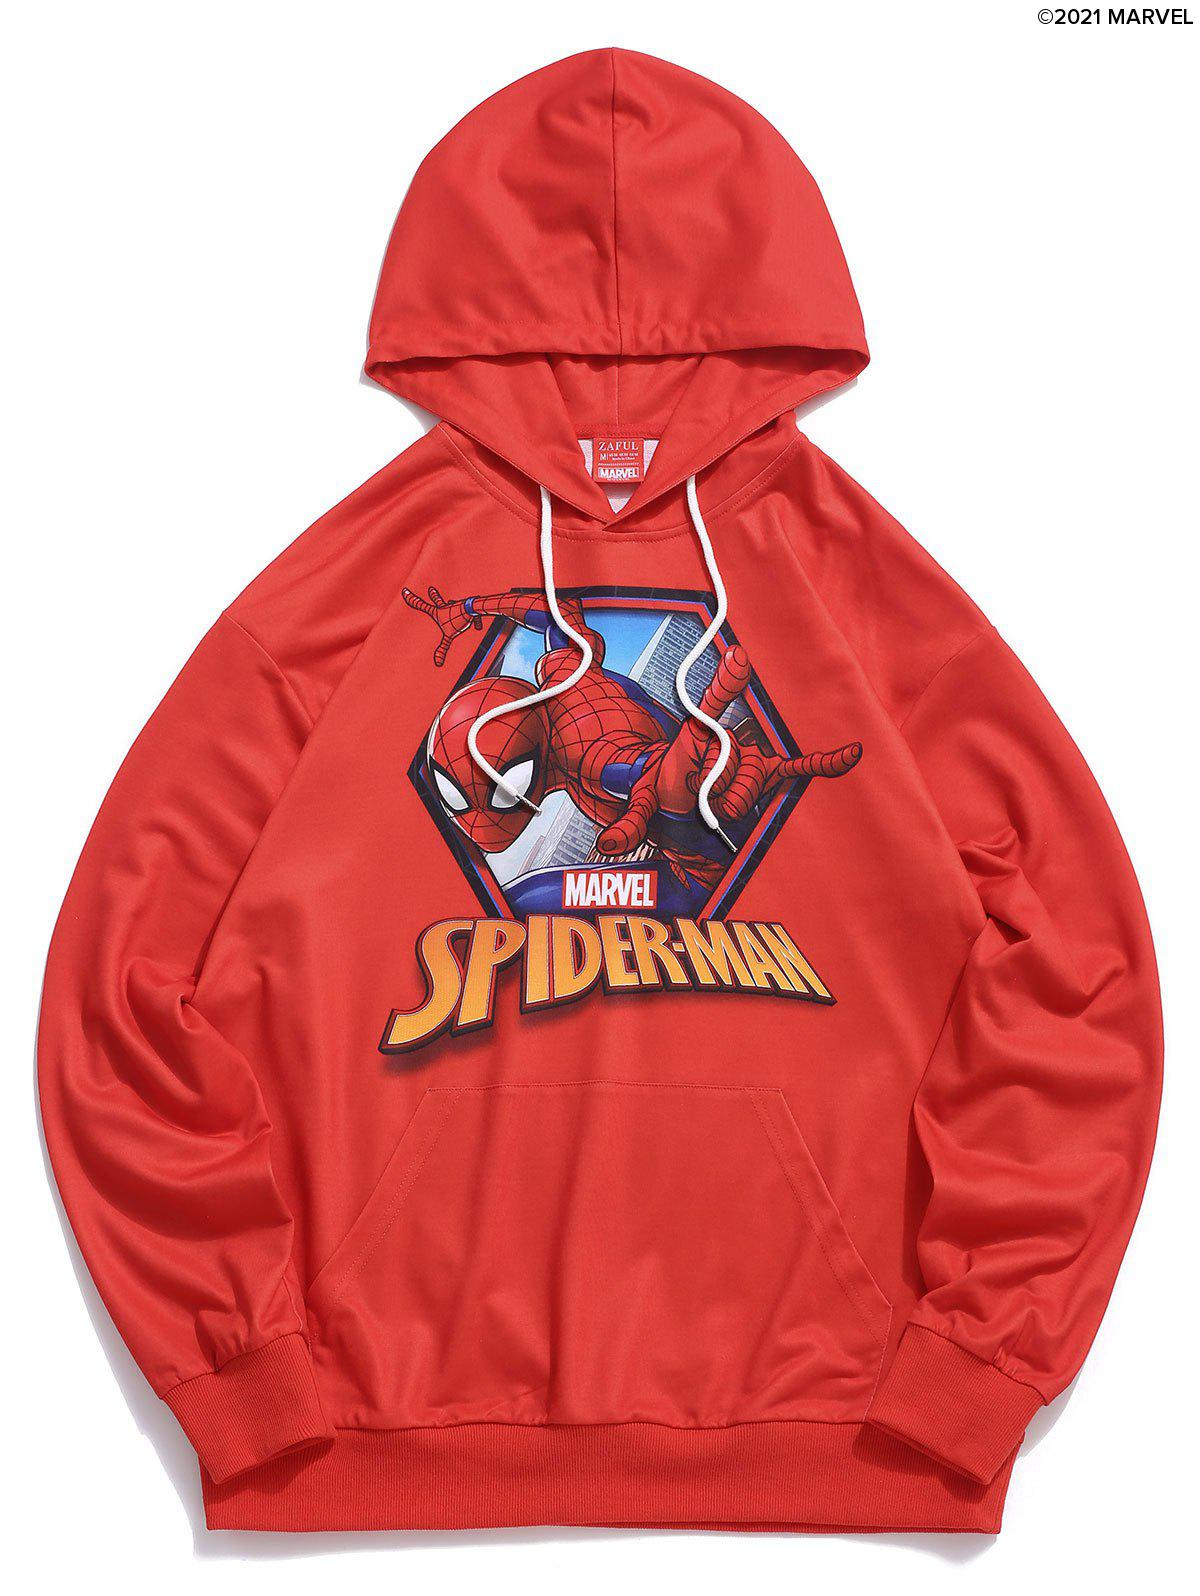 Online Marvel Spider-Man Graphic Print Hoodie